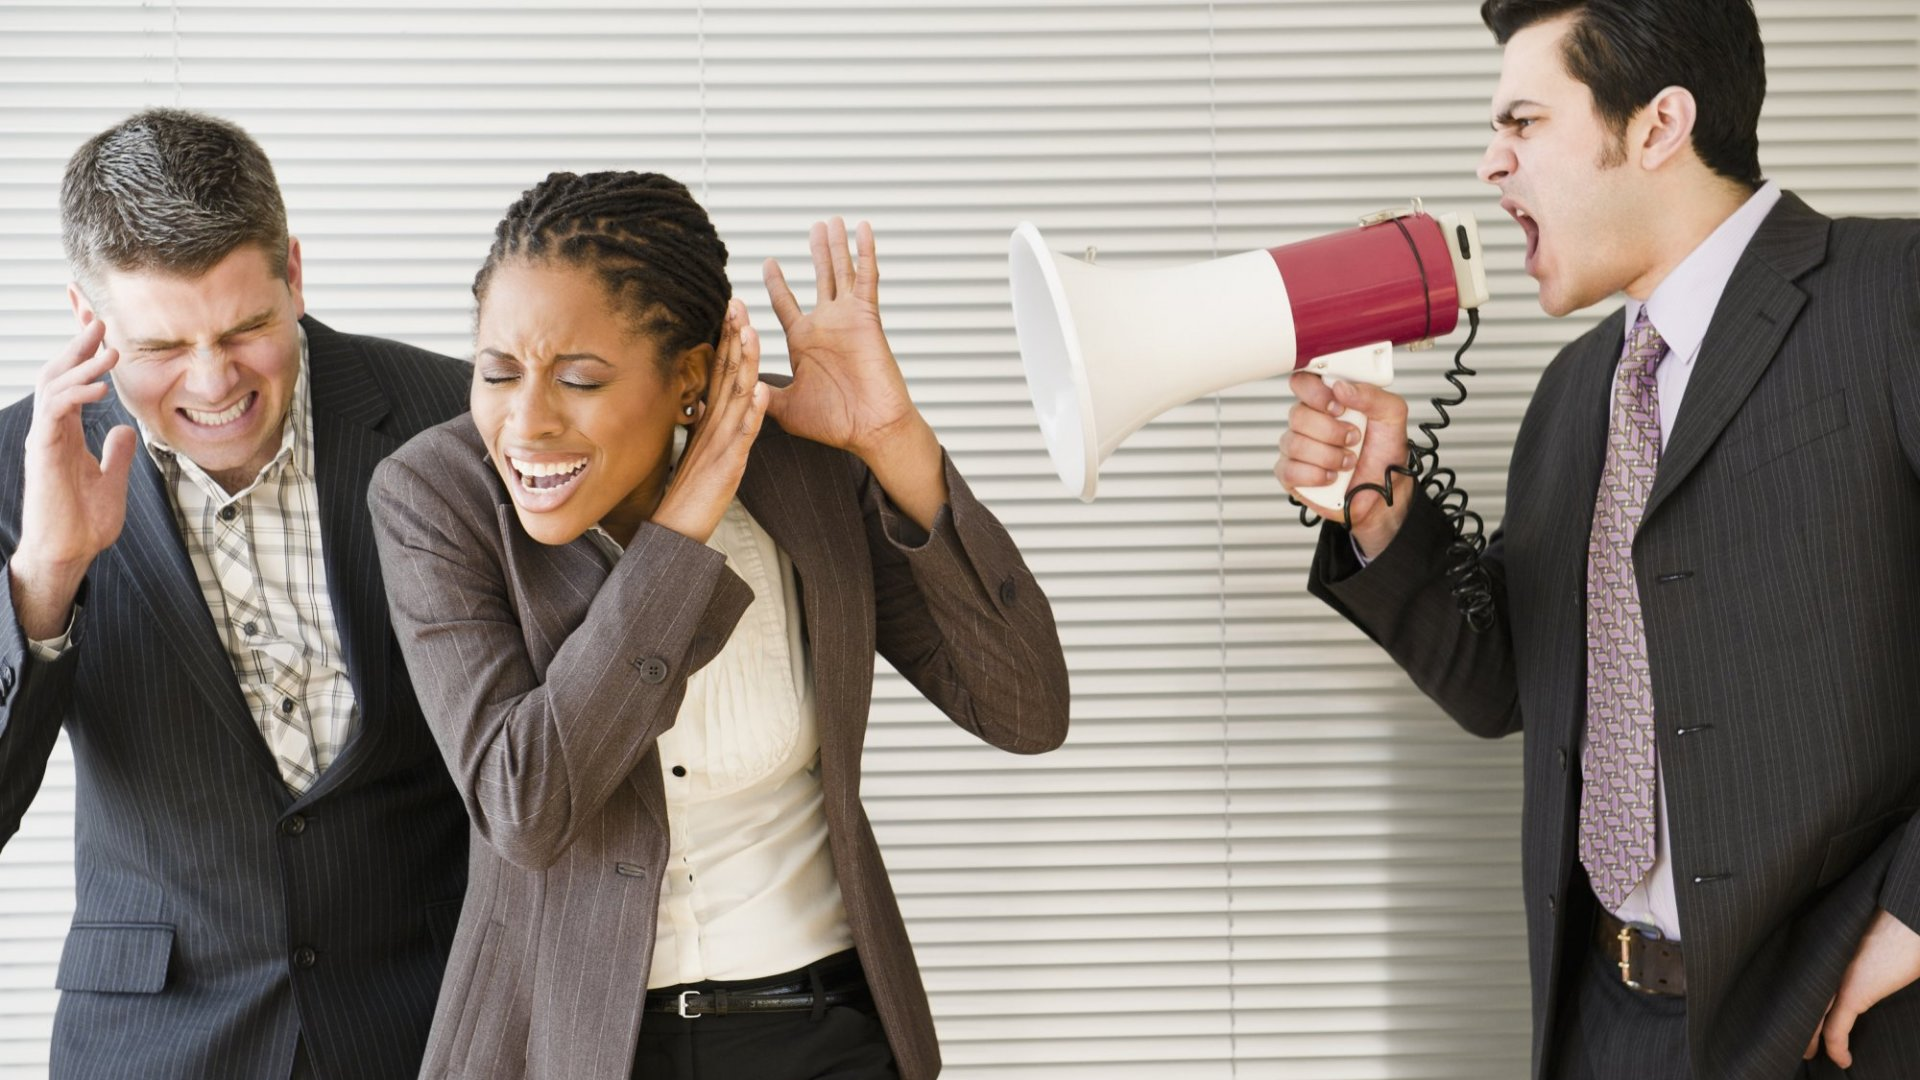 3 Things to Say to Your Team Instead of 'Because I Said So'